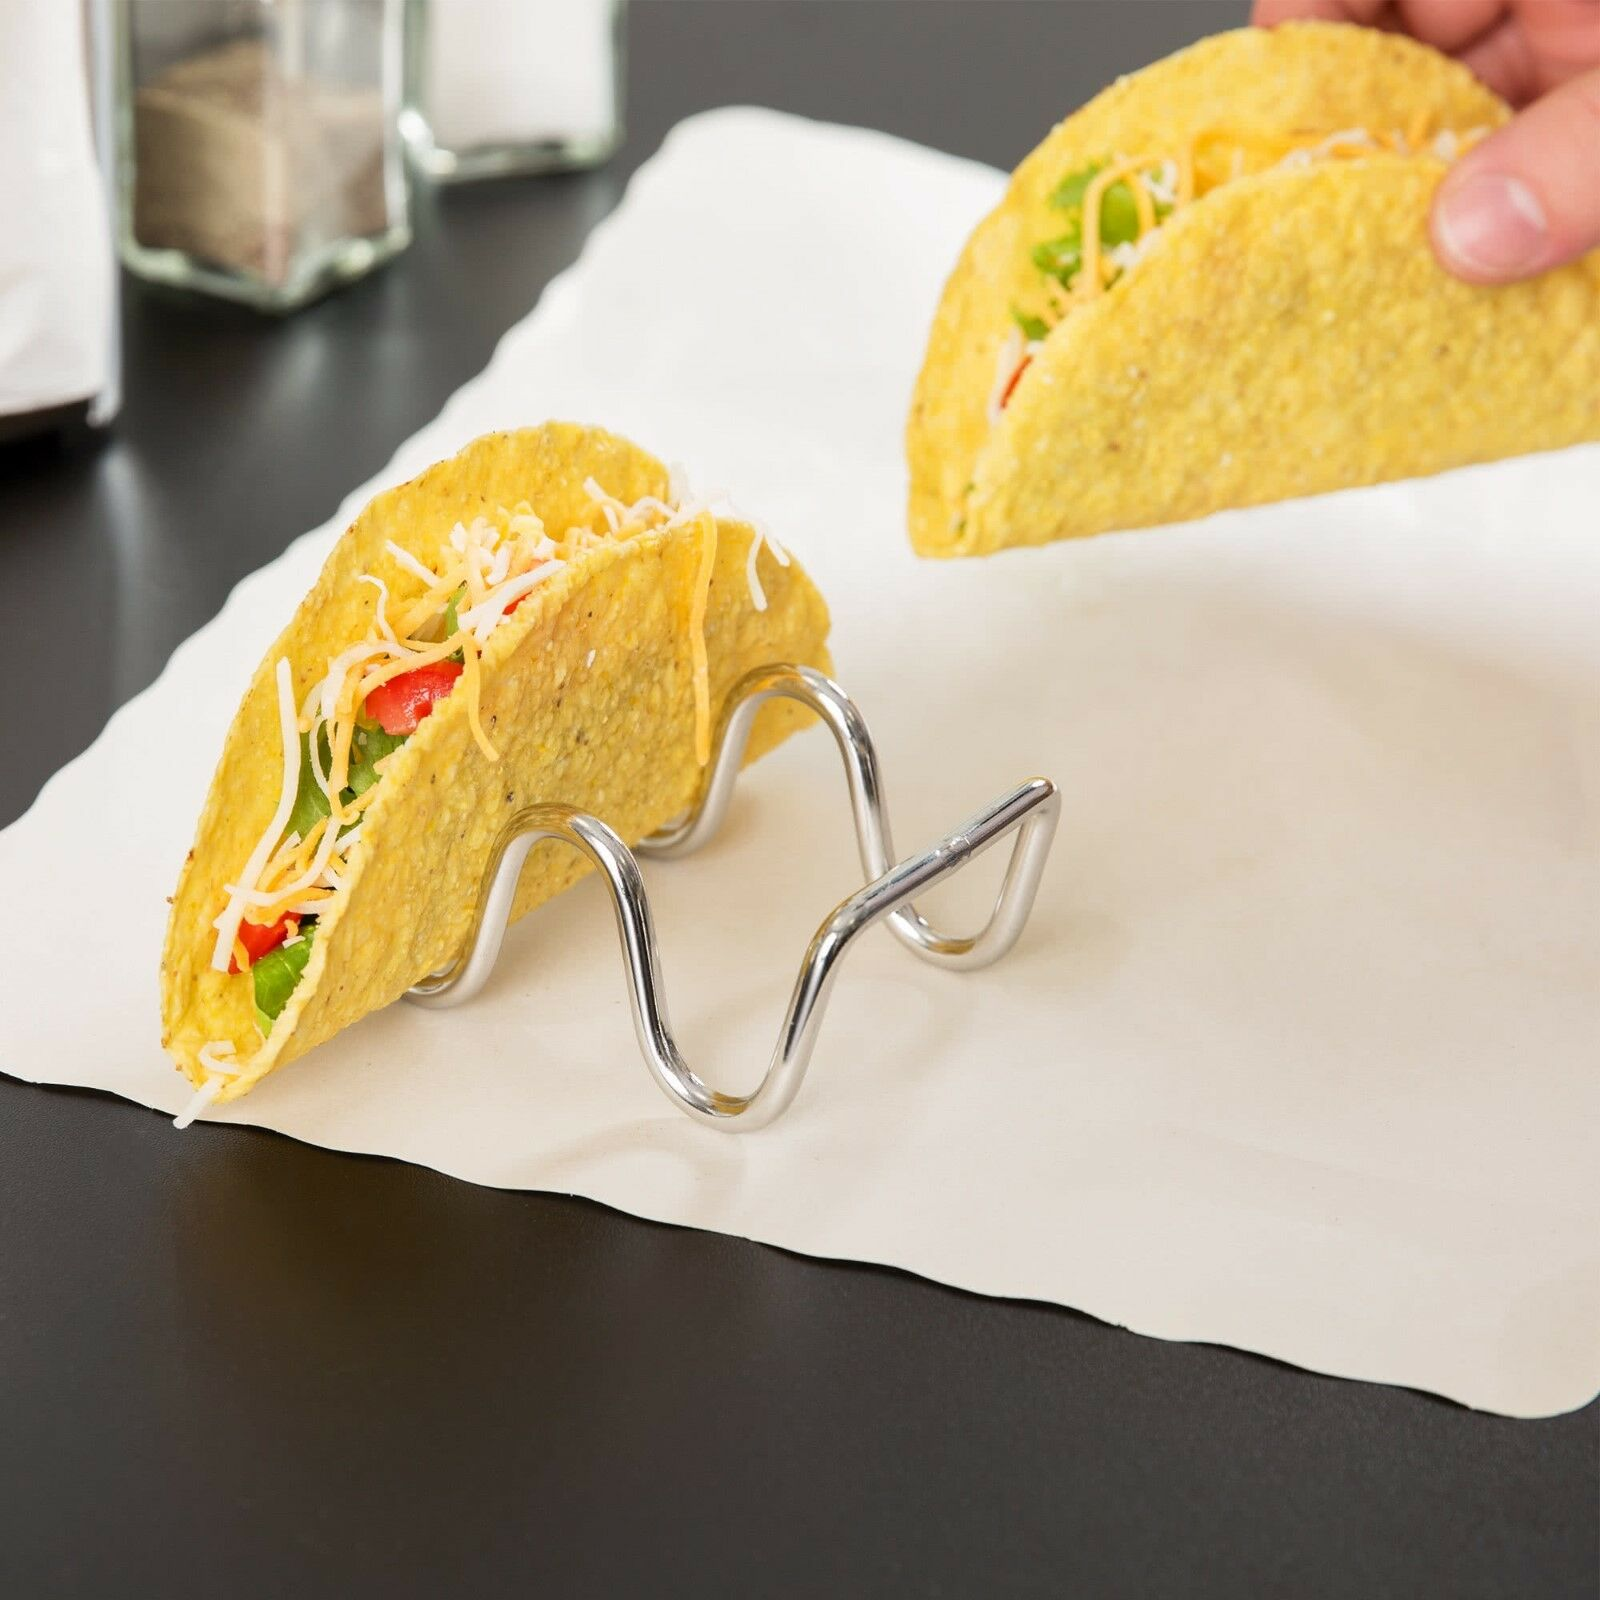 TACO TAXI. STAINLESS STEEL WIRE.DIM:9.6X5.7X.8 CM - Mabrook Hotel Supplies